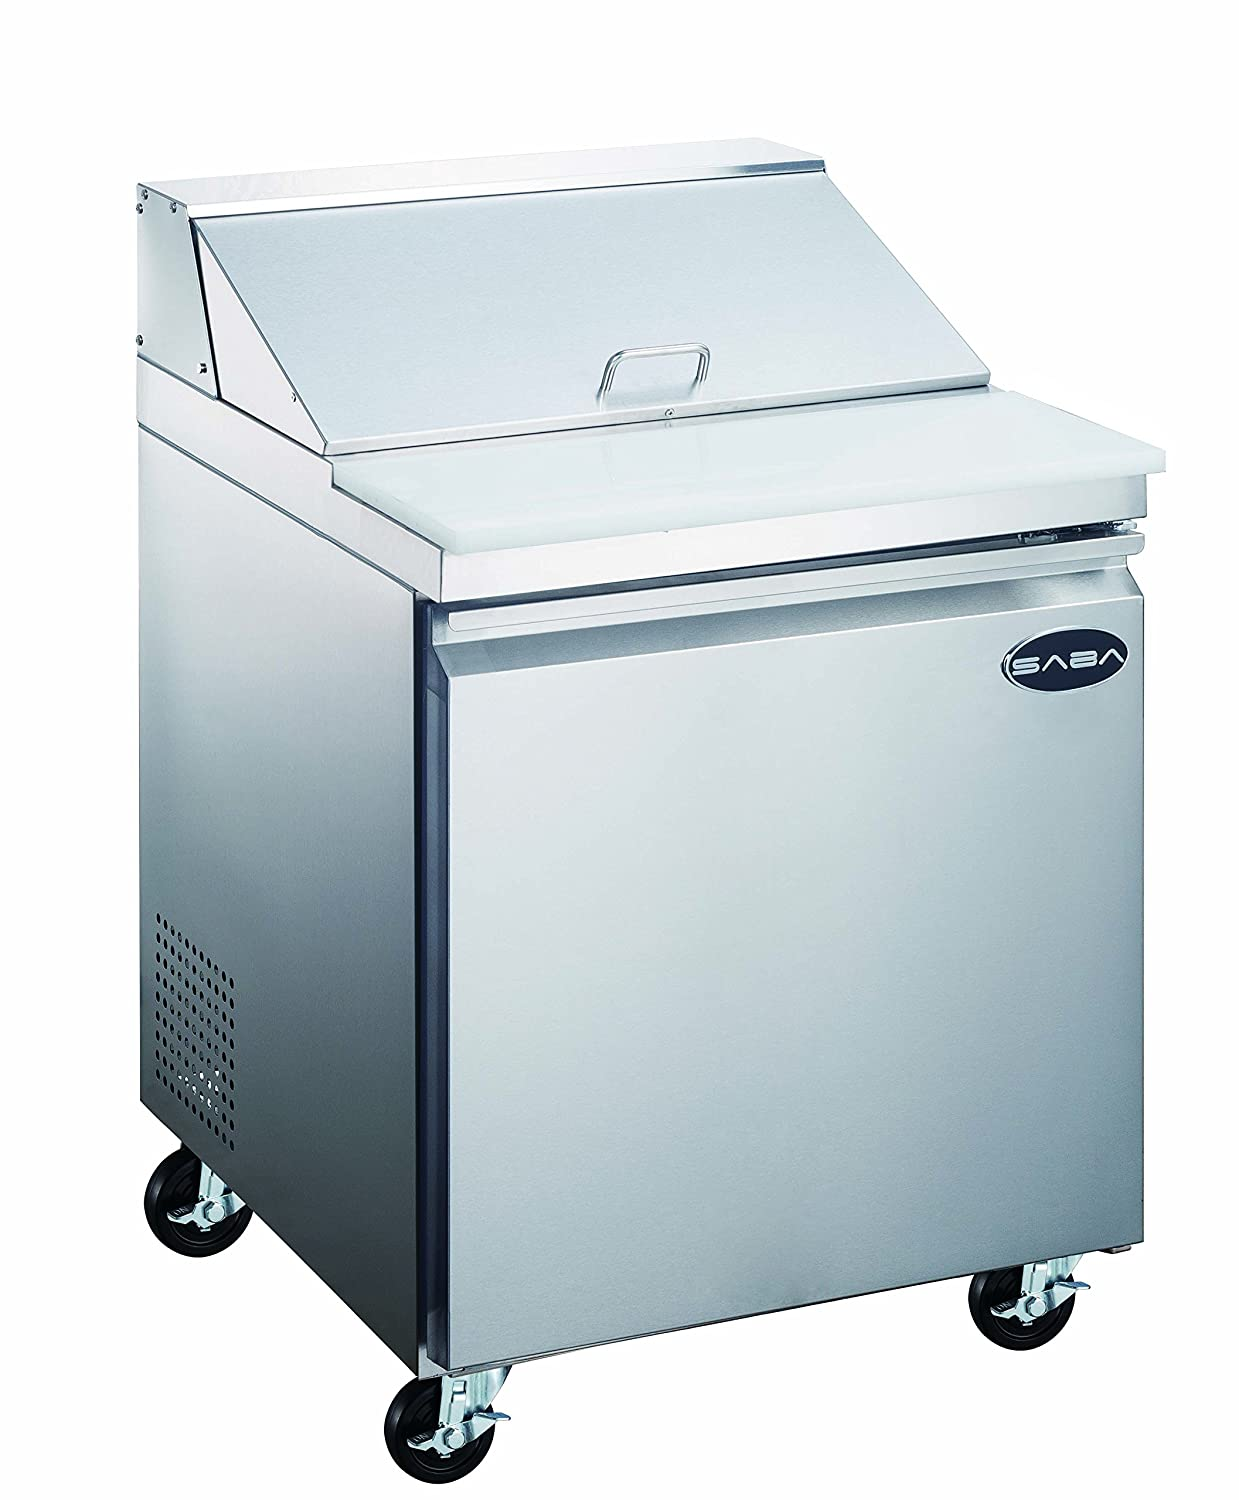 "SABA 27"" Commercial Sandwich Salad Prep Table Refrigerator Cooler"